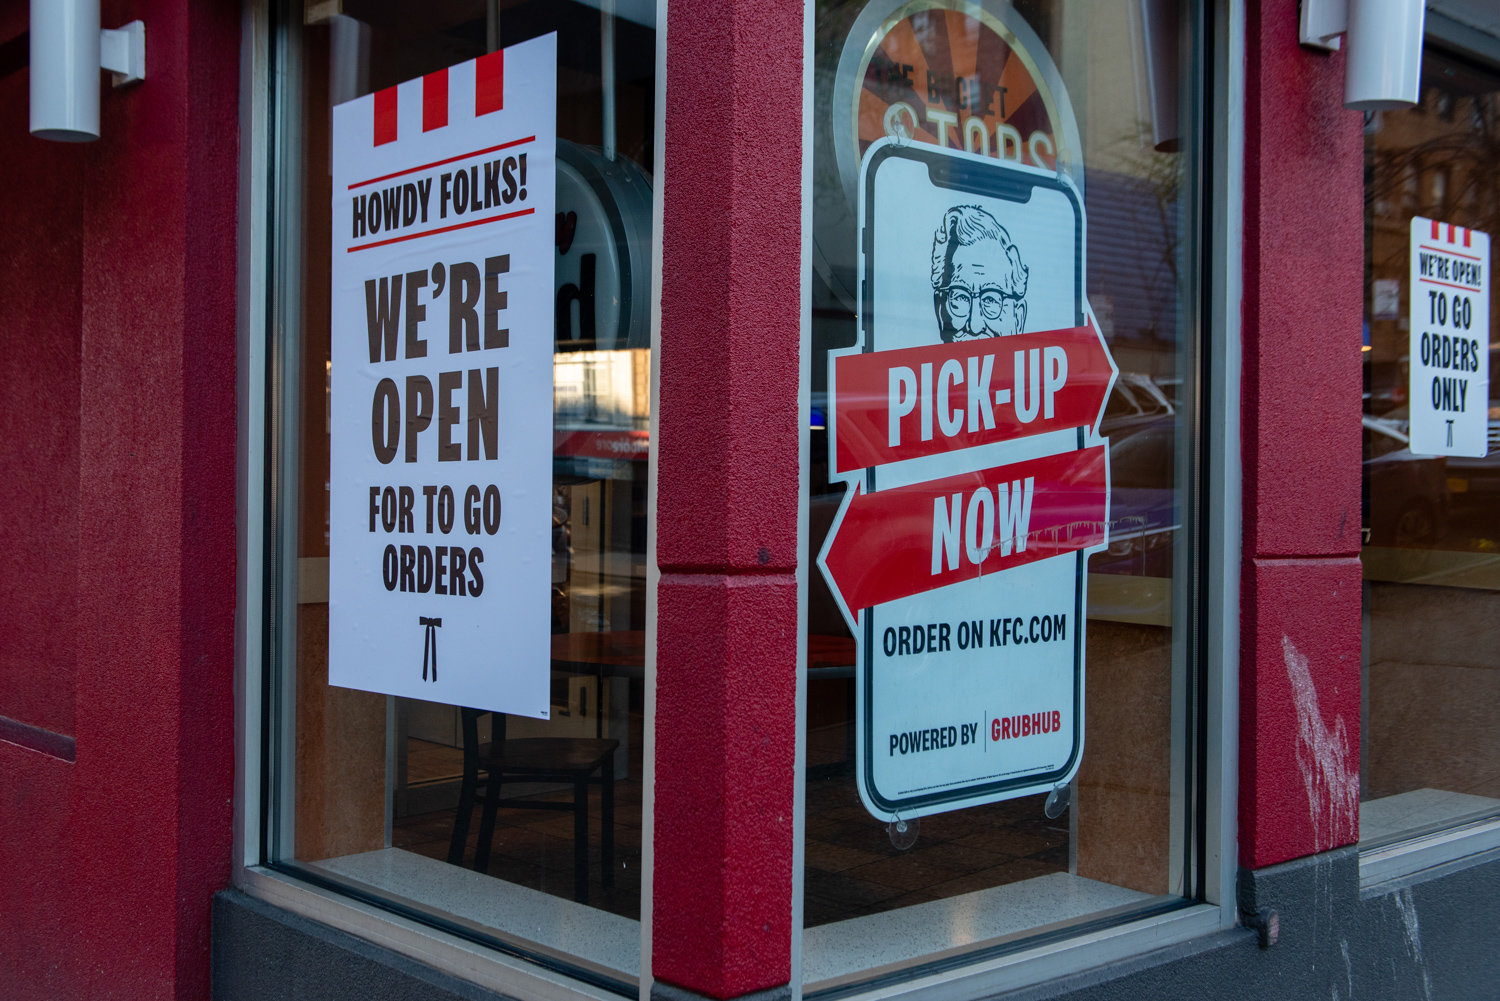 Signs inform passersby that the Kentucky Fried Chicken on Broadway is open for to-go orders. The partially closed business is a familiar sight in the weeks since the state's shutdown in response to the coronavirus pandemic, which Frida Sternberg captured for her project documenting the new normal.